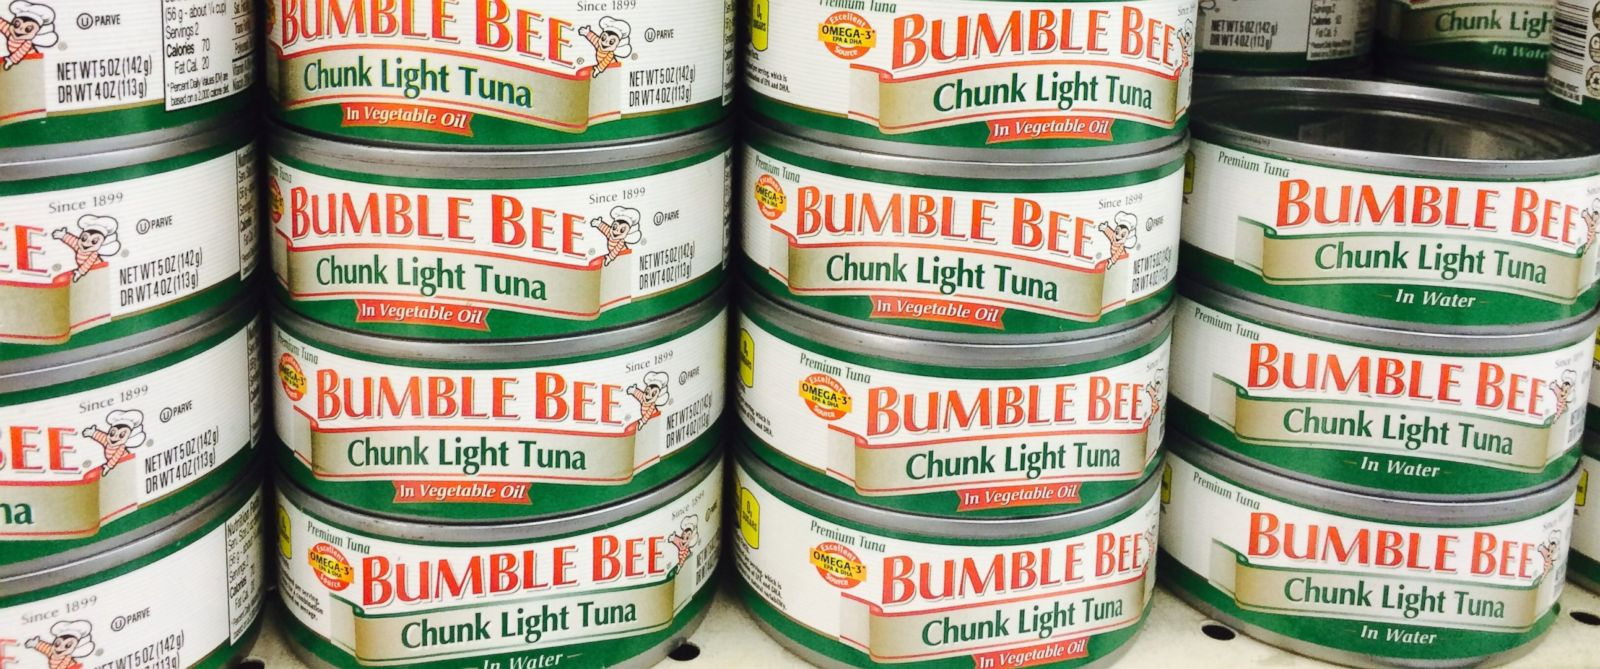 PHOTO: Cans of Bumble Bee chunk light tuna are pictured in this April 13, 2015 file photo.